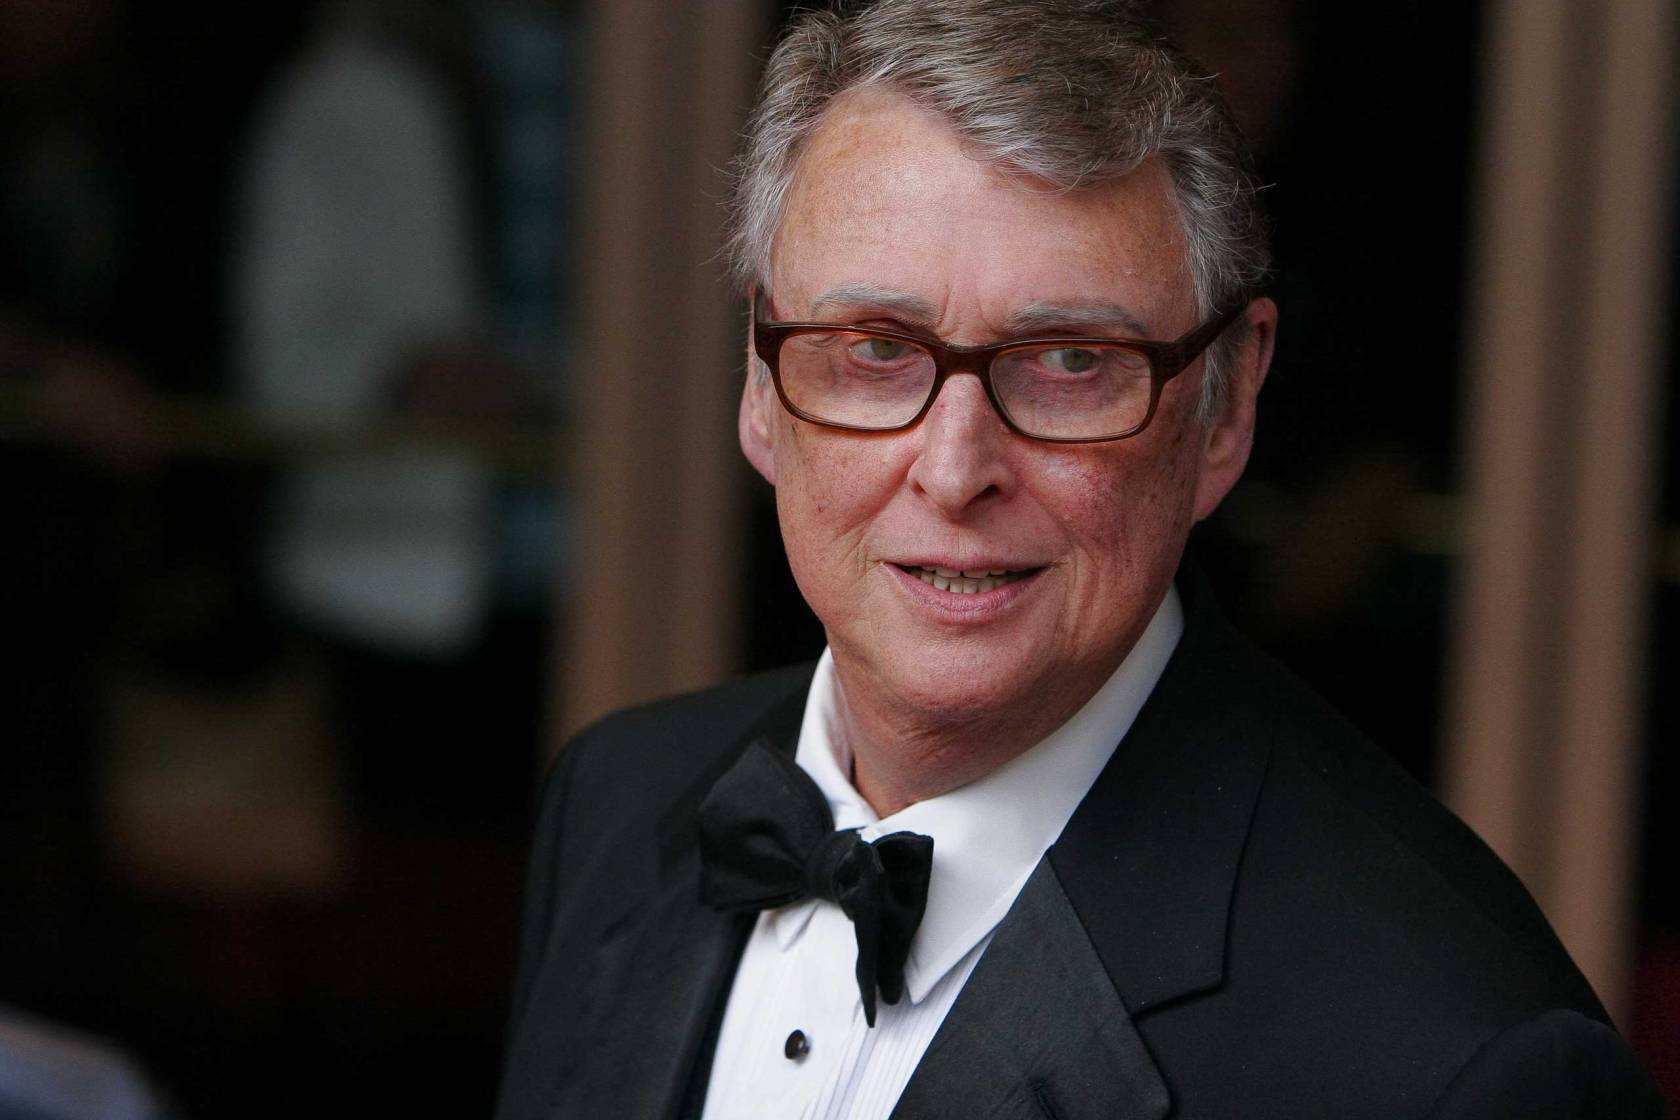 mike nichols View the profiles of people named mike nichols join facebook to connect with mike nichols and others you may know facebook gives people the power to.